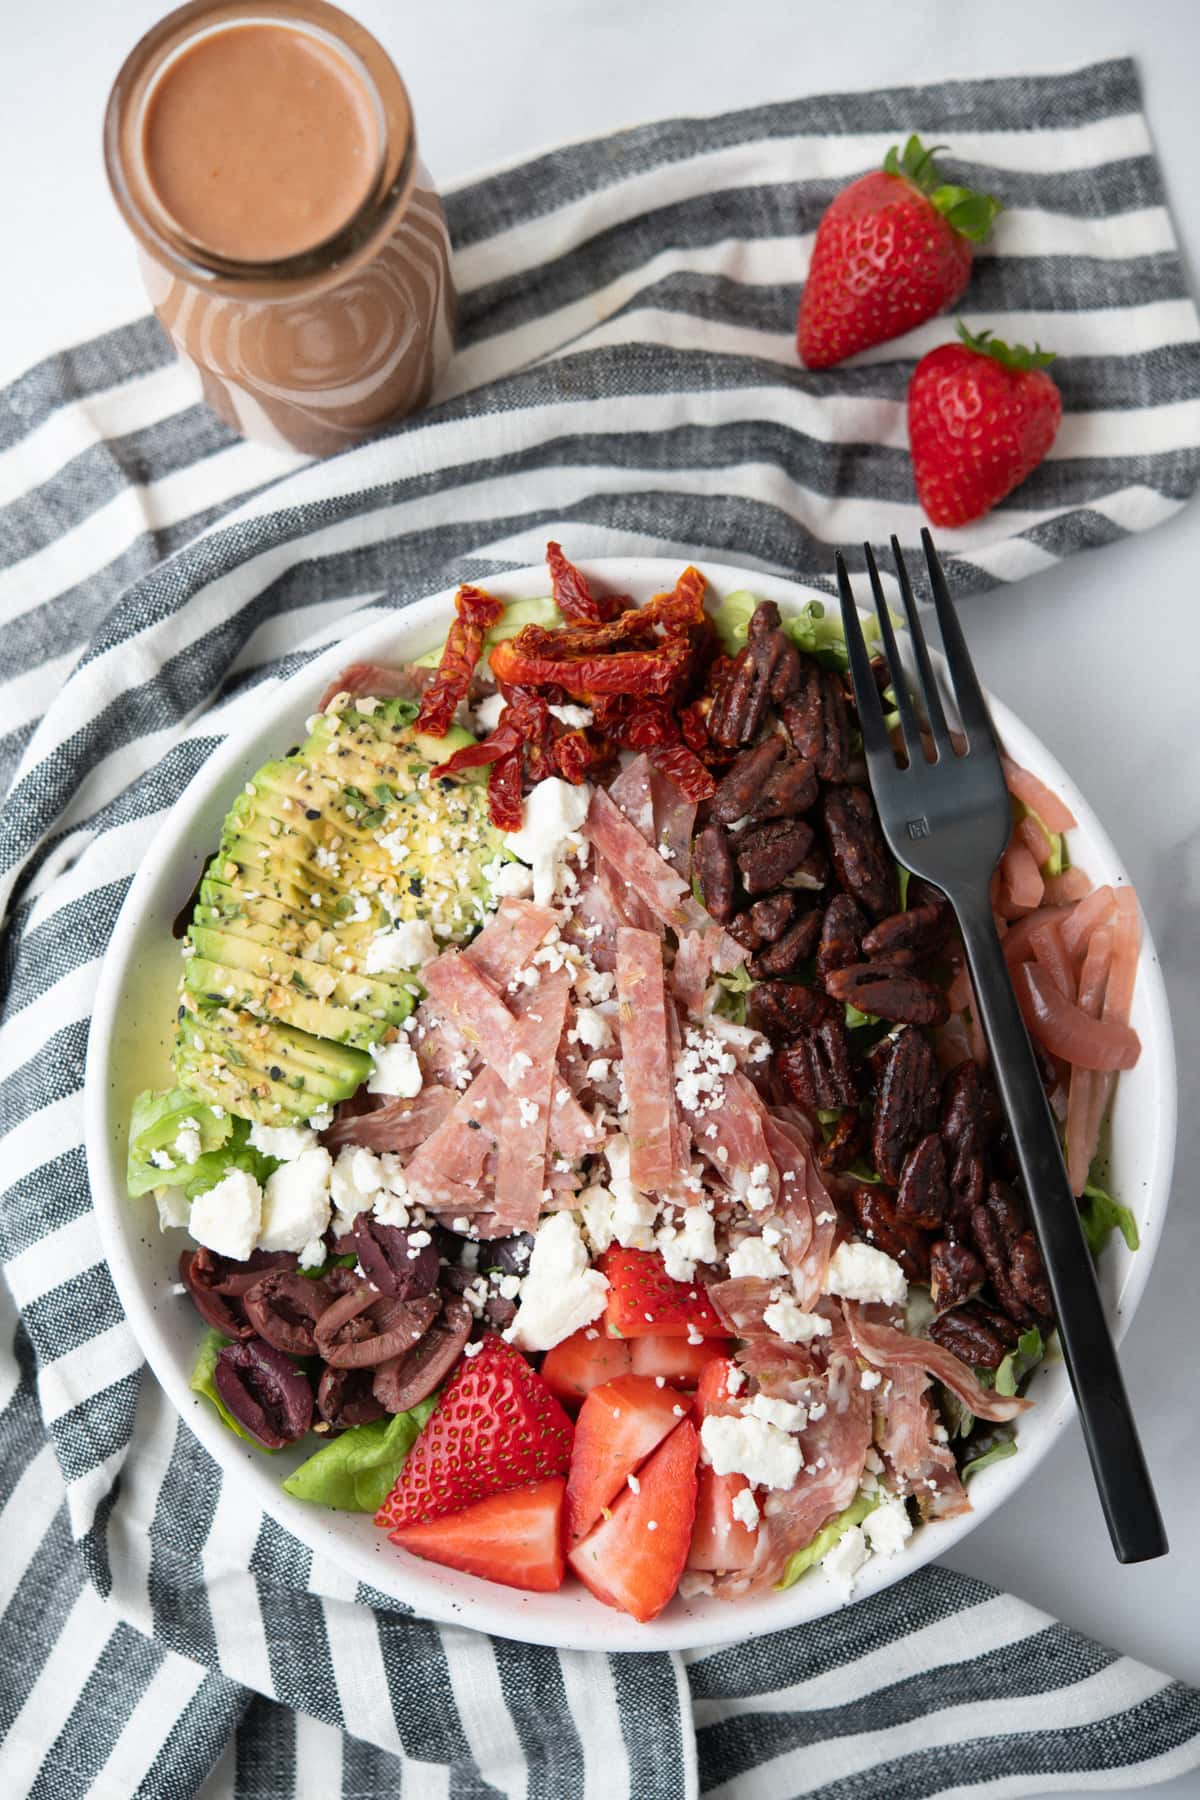 Overhead shot of a colorful salad with avocado, salami, cheese, pecans, and strawberries